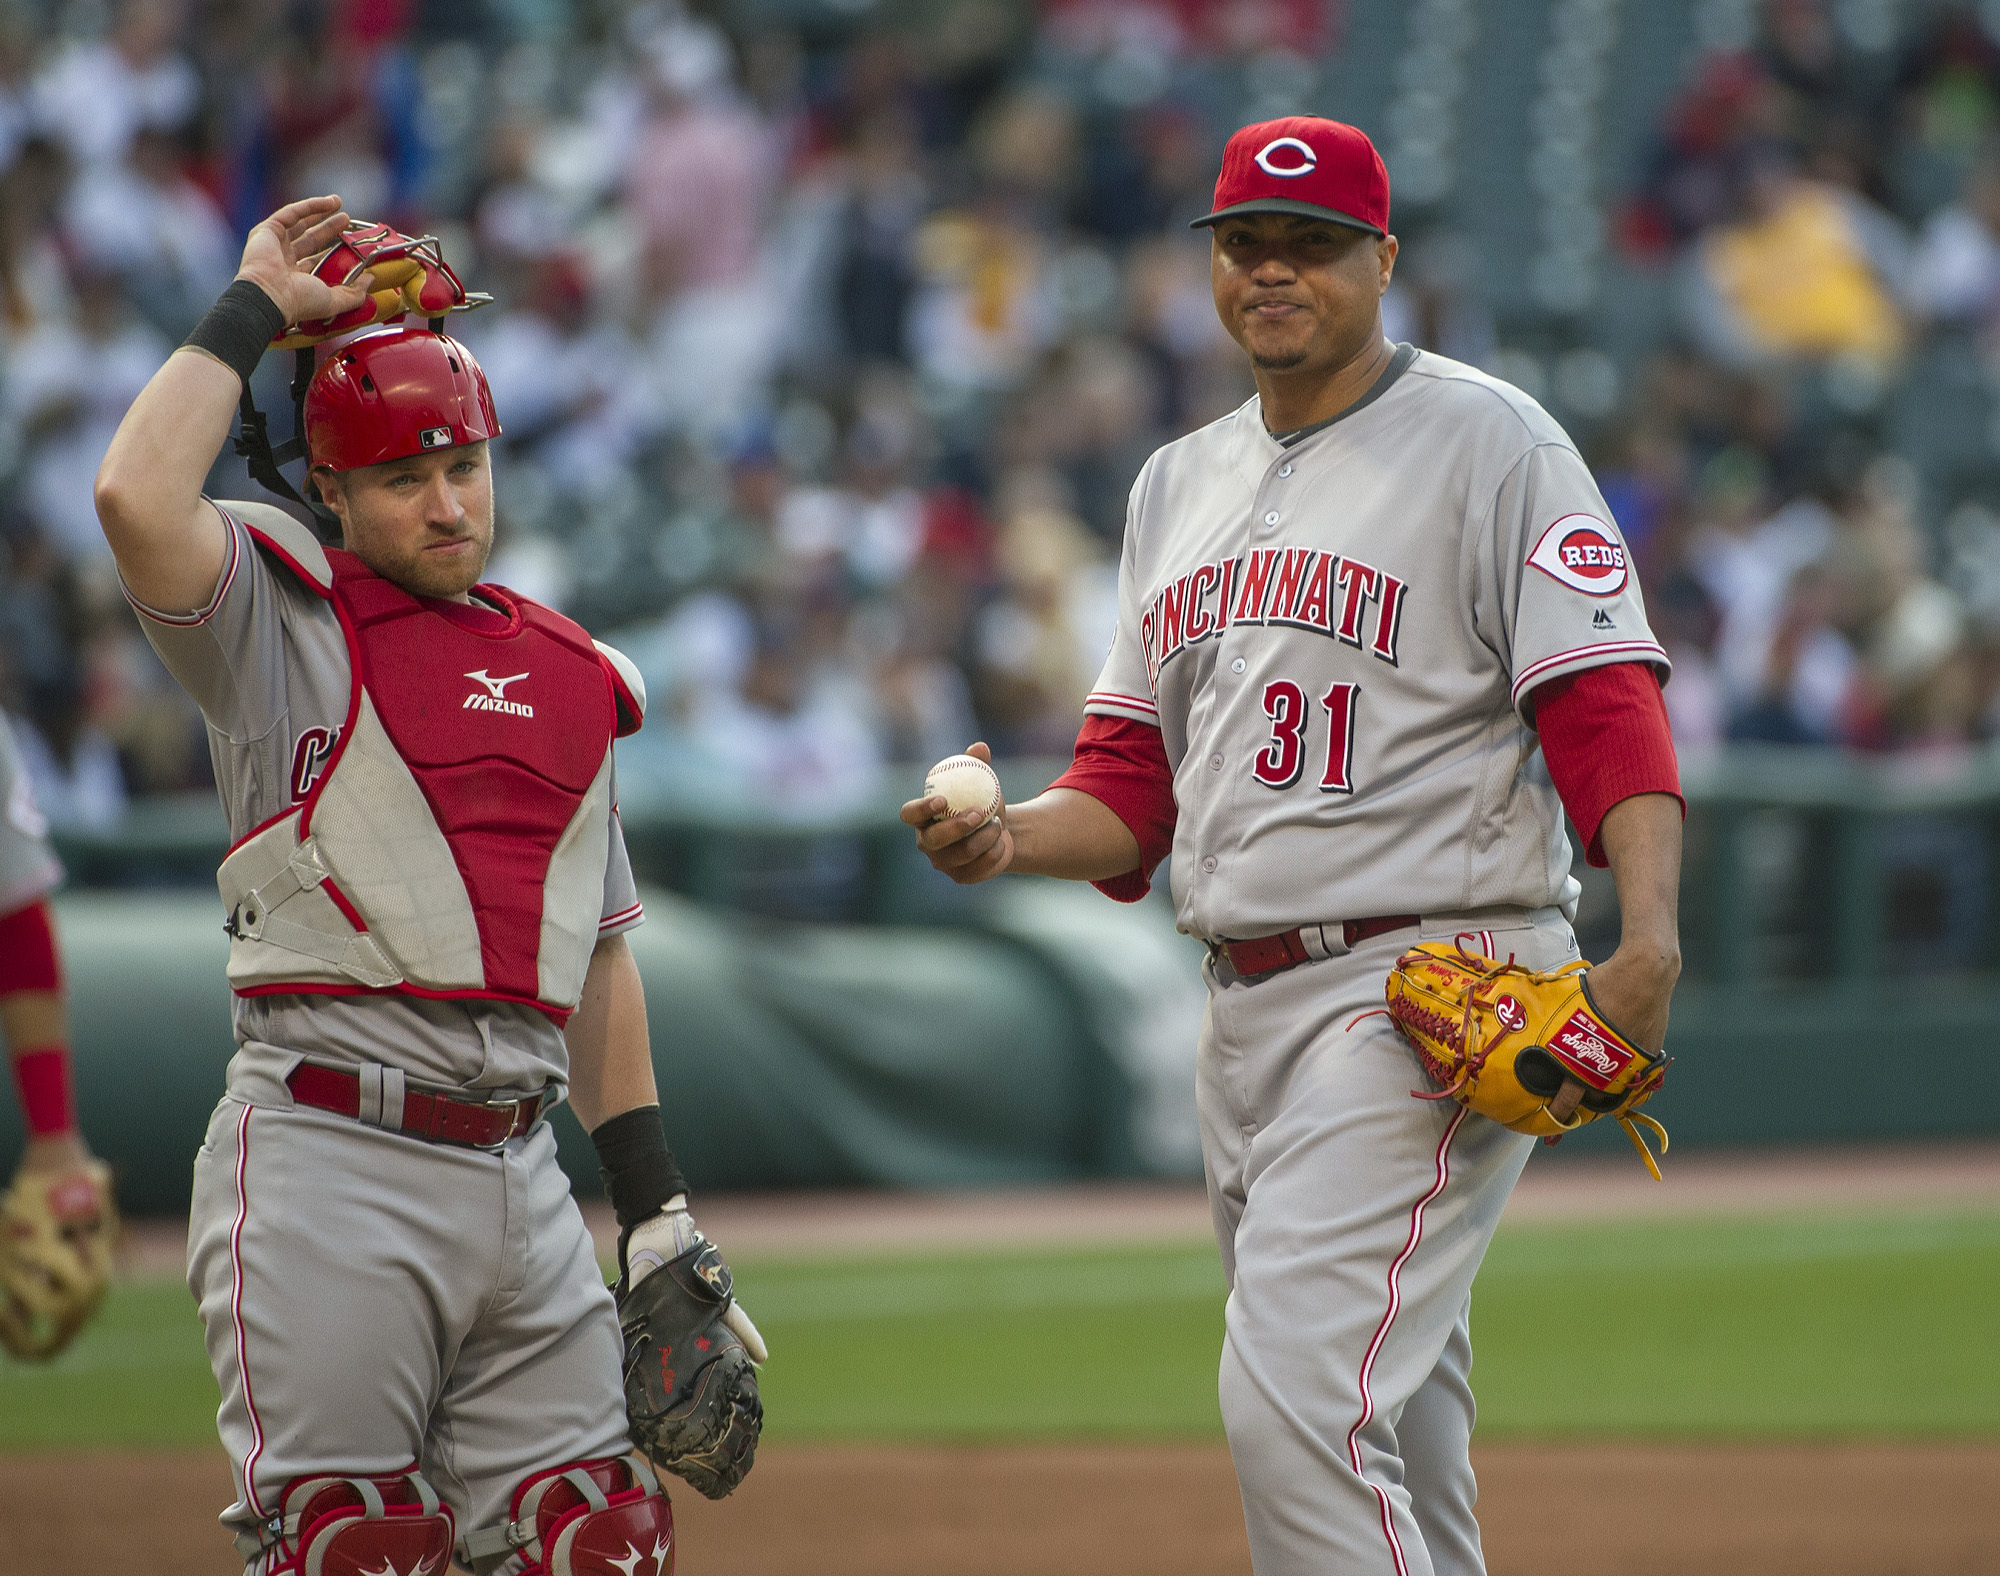 Cincinnati Reds starter Alfredo Simon prepares to leave the game as catcher Tucker Barnhart watches, during the fifth inning of a baseball game in Cleveland, Tuesday, May 17, 2016. (AP Photo/Phil Long)